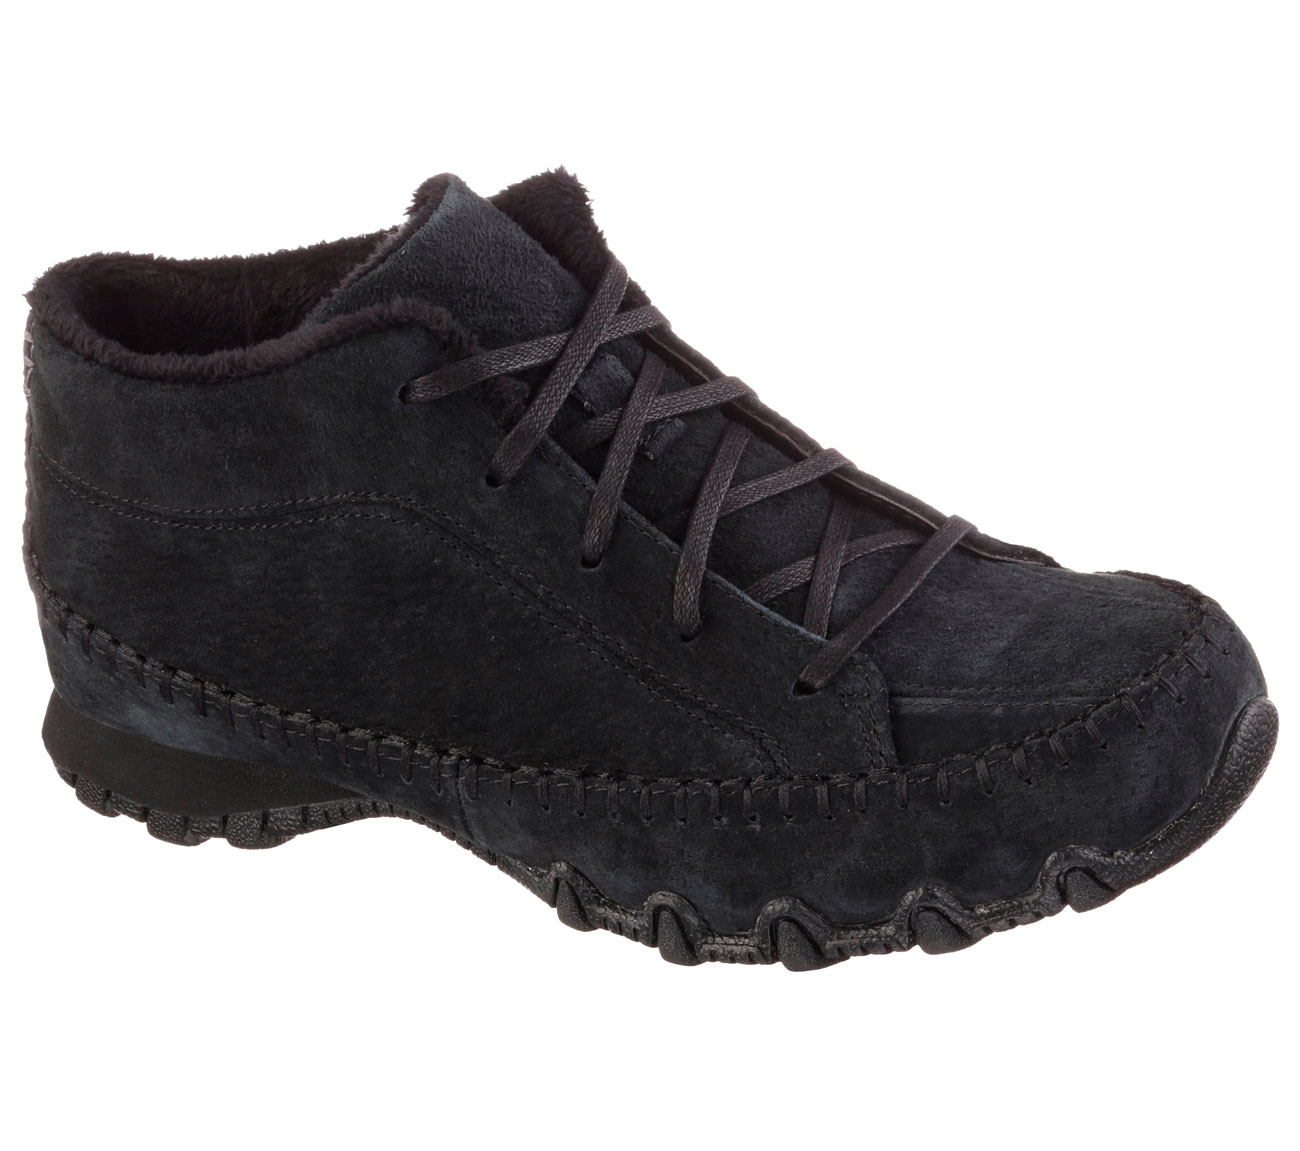 Skechers Relaxed Fit Totem Pole Lace Up Shoes